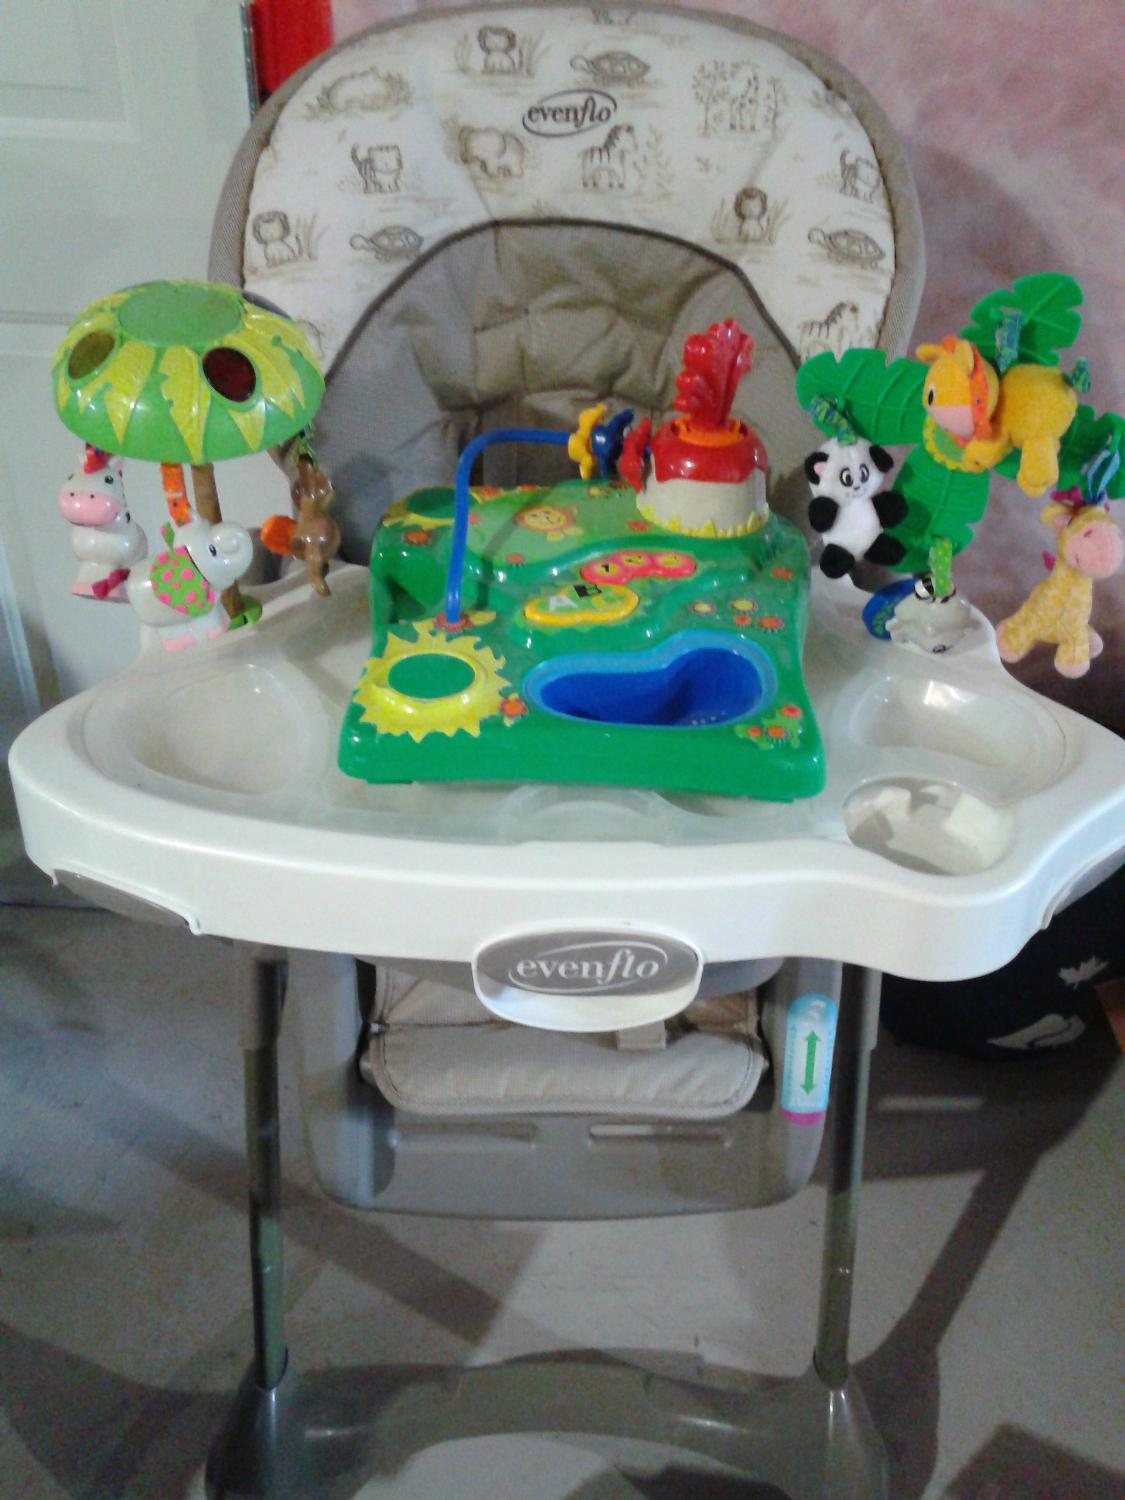 Evenflo majestic high chair - Find More Evenflo Majestic Jungle High Chair For Sale At Up To 90 Off Stouffville On